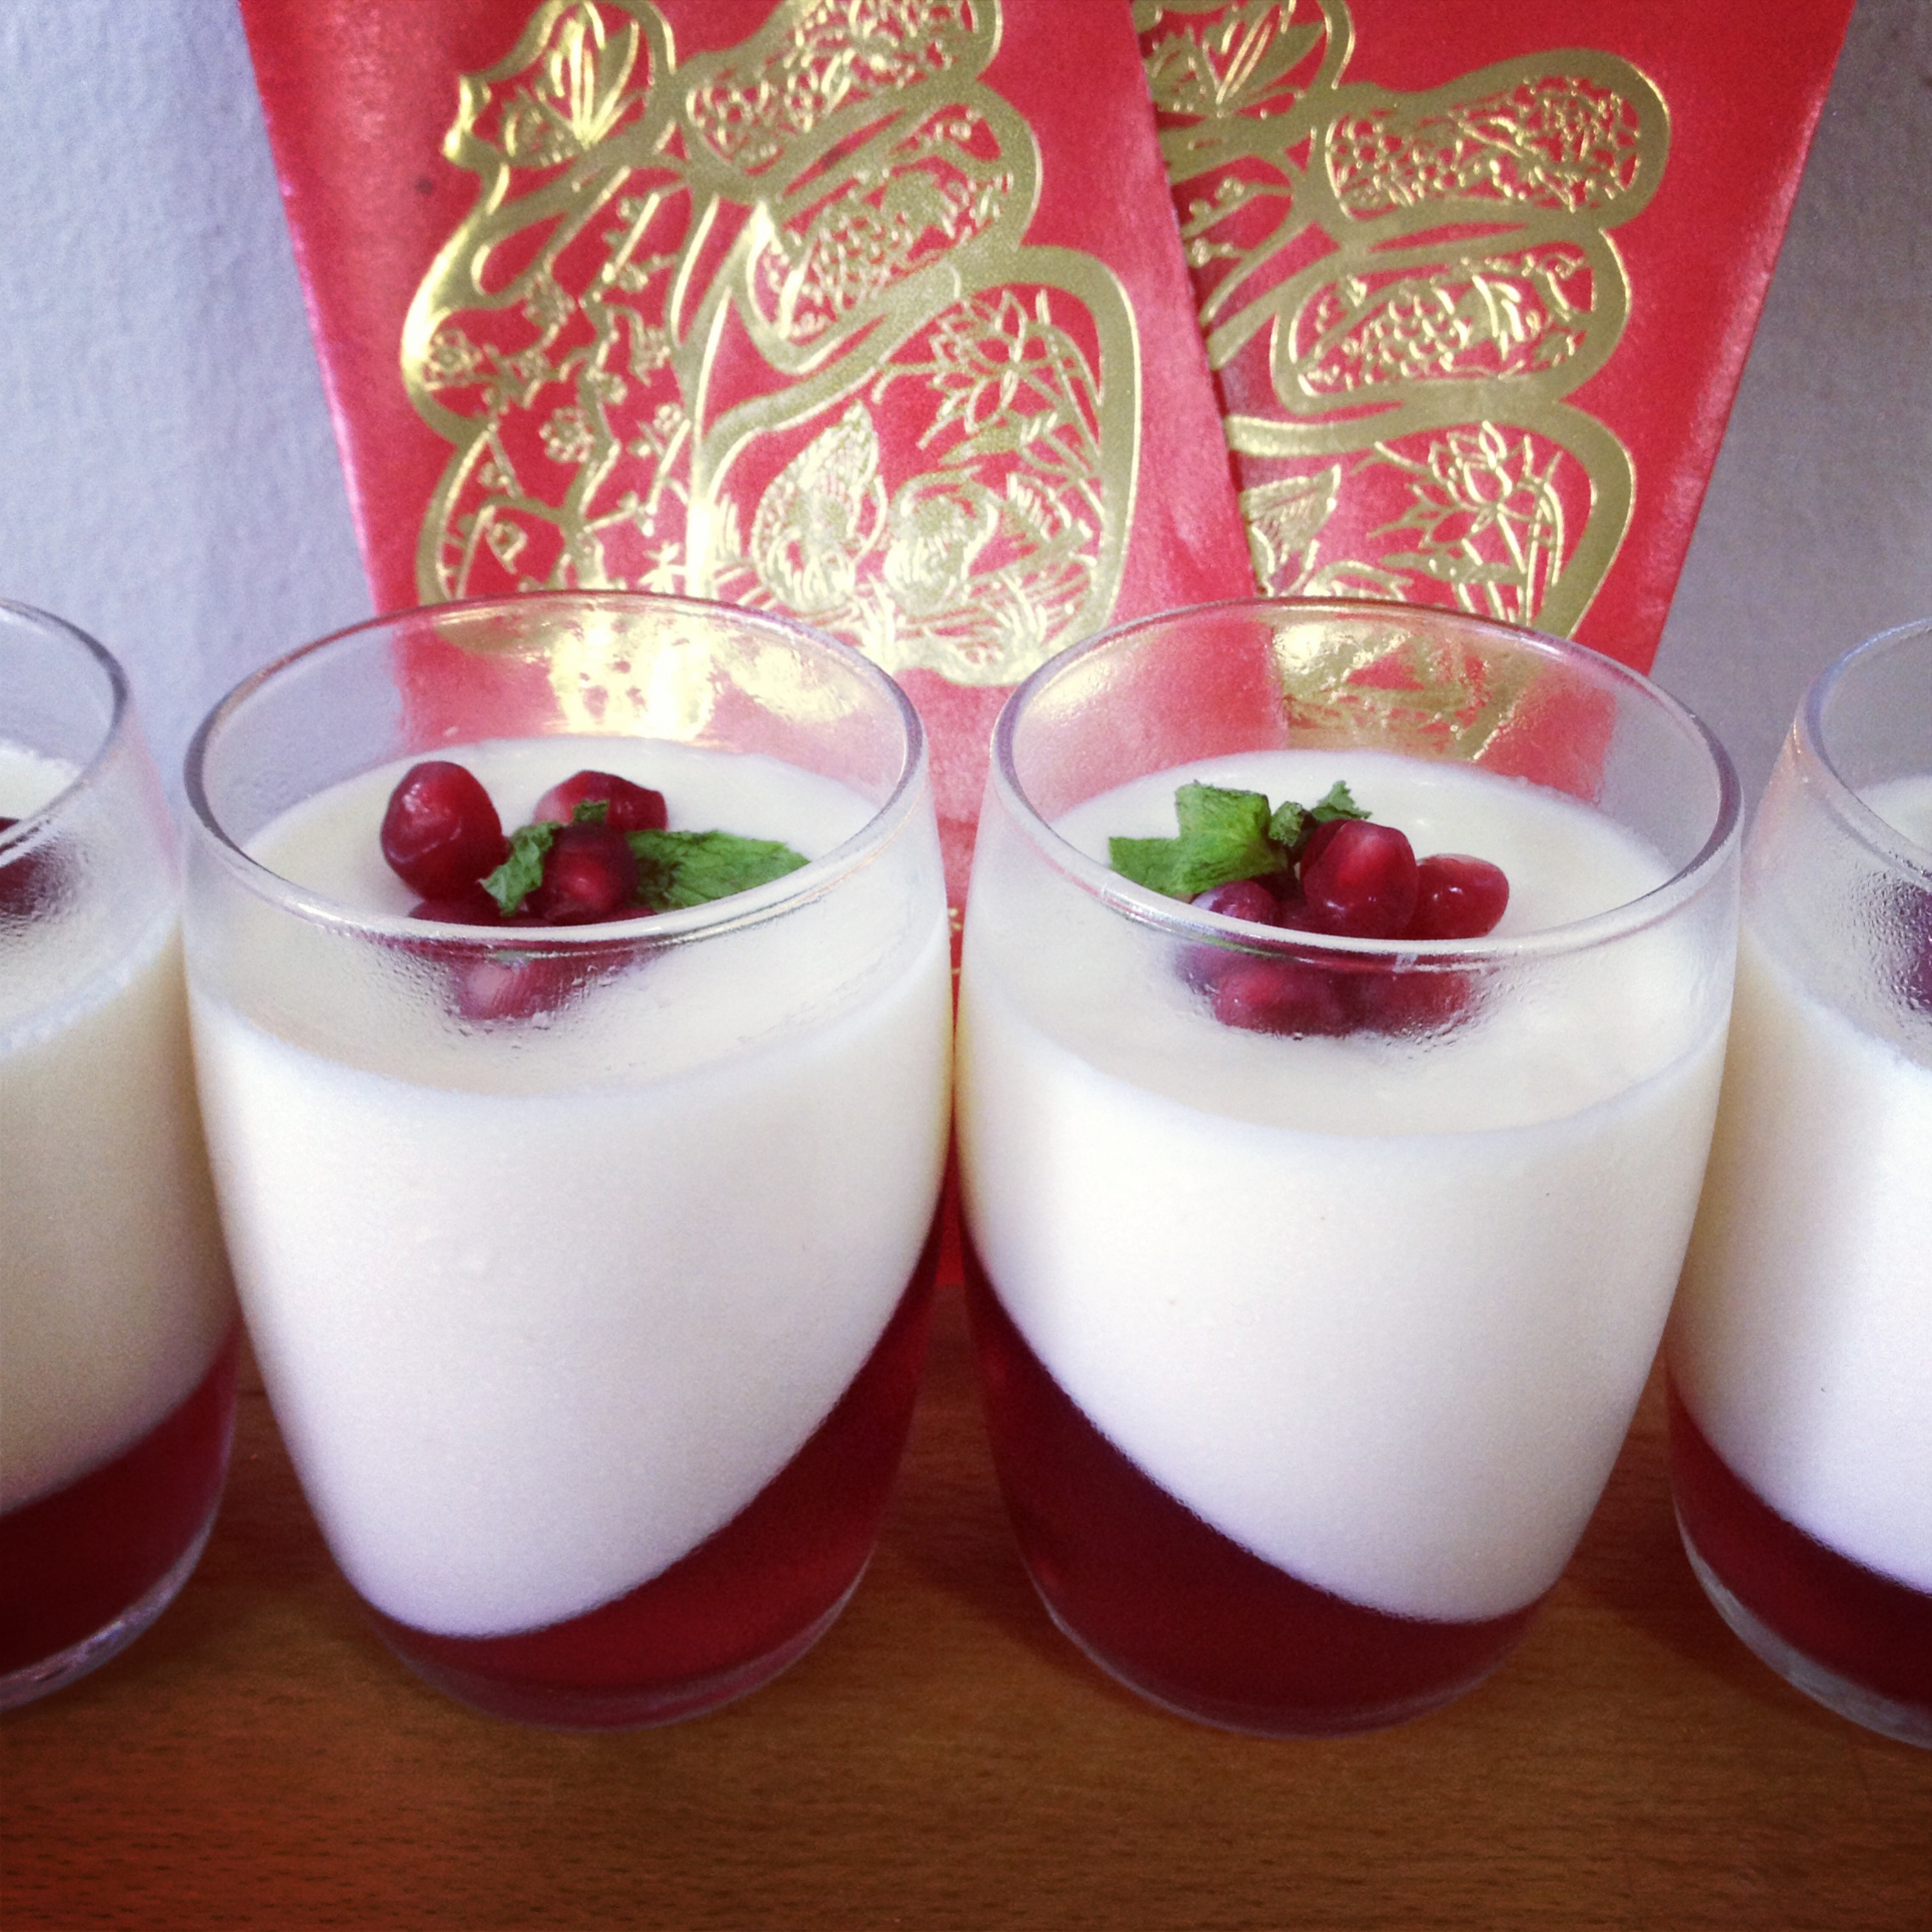 CNY-inspired Recipe #3: Lychee Panna Cotta With